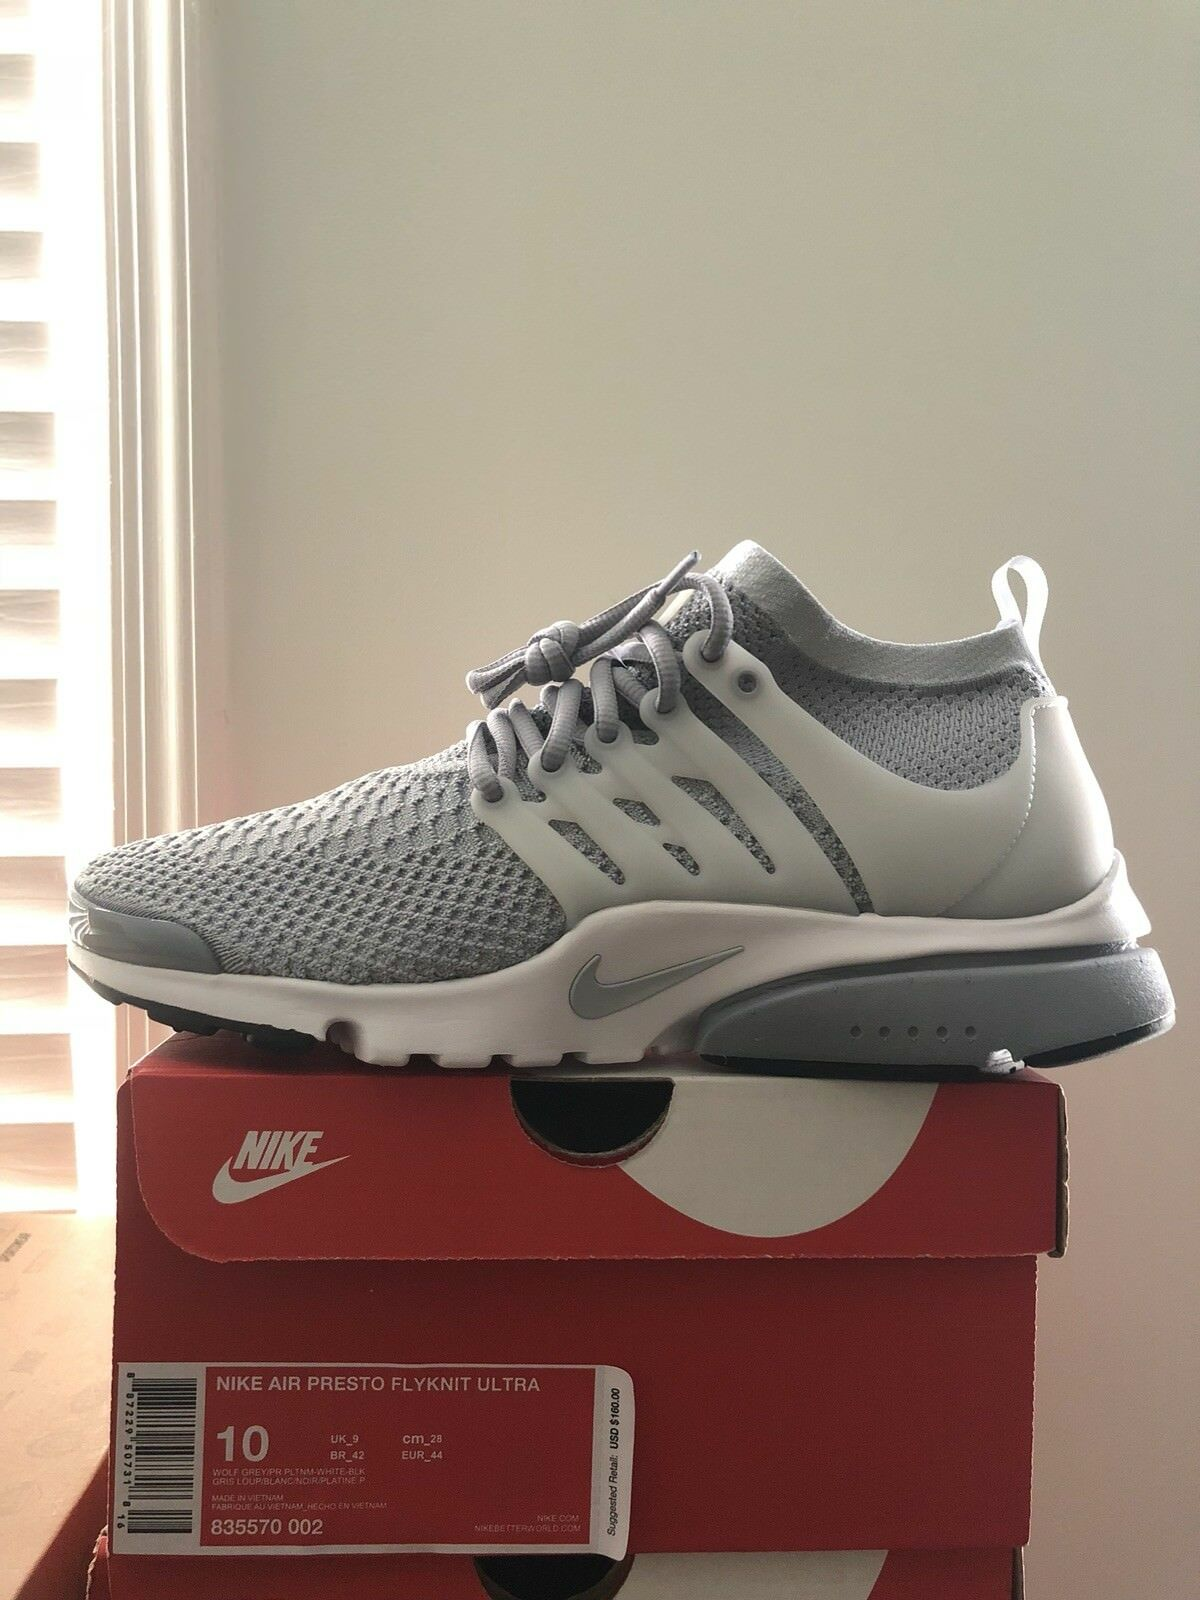 Nike Air presto Flyknit ultra Gris animal Blanco max 1 95 animal Gris 97 sean Wotherspoon 8f2ca6